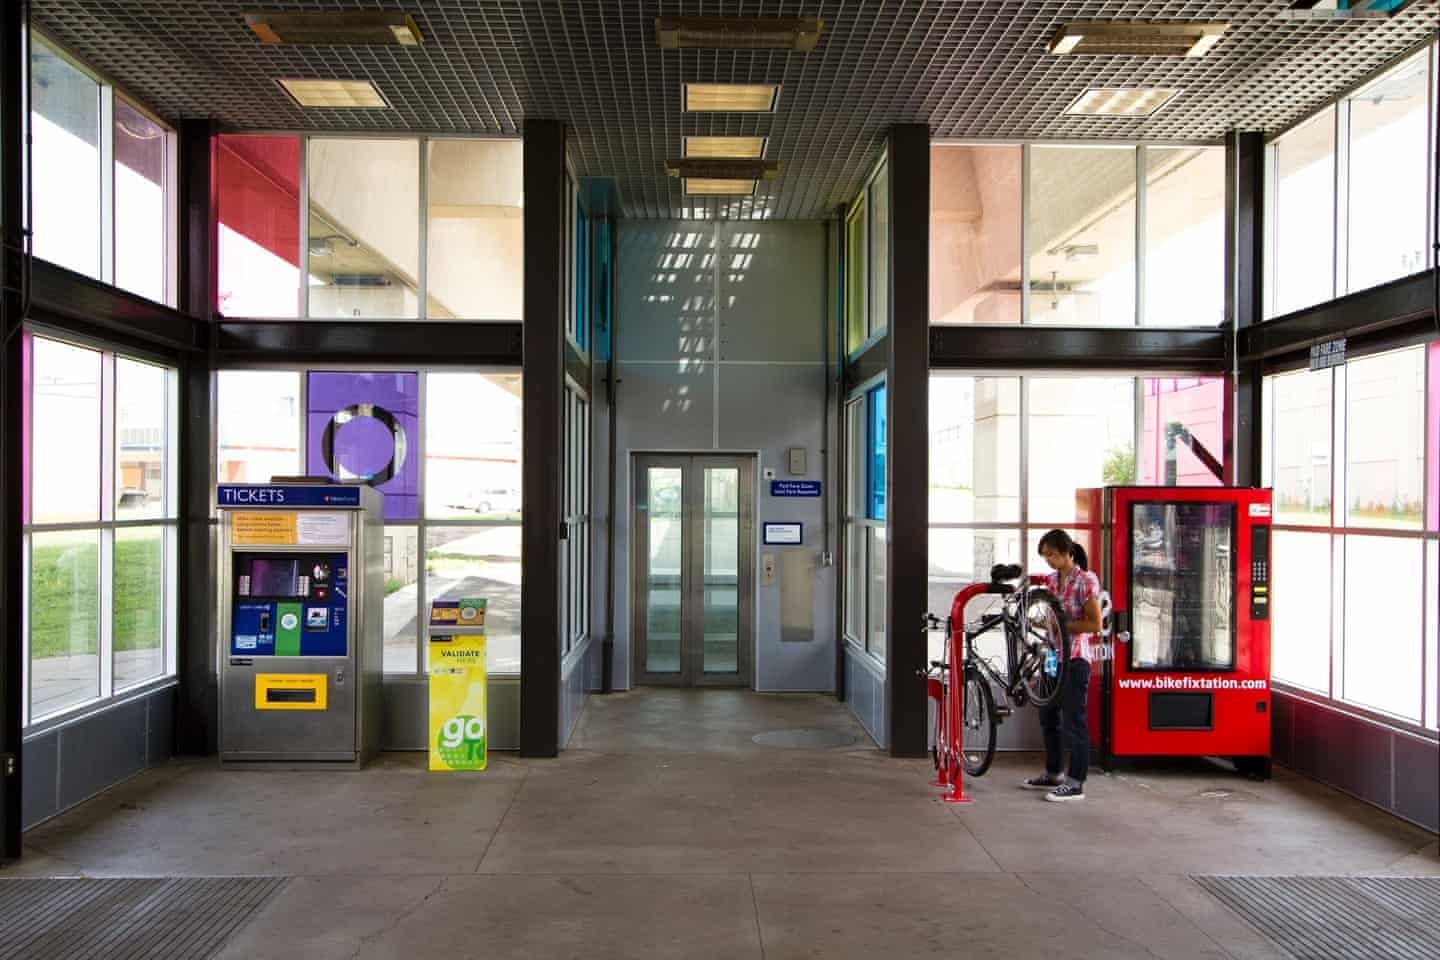 Architecture for bikes in pictures Bike repair stand